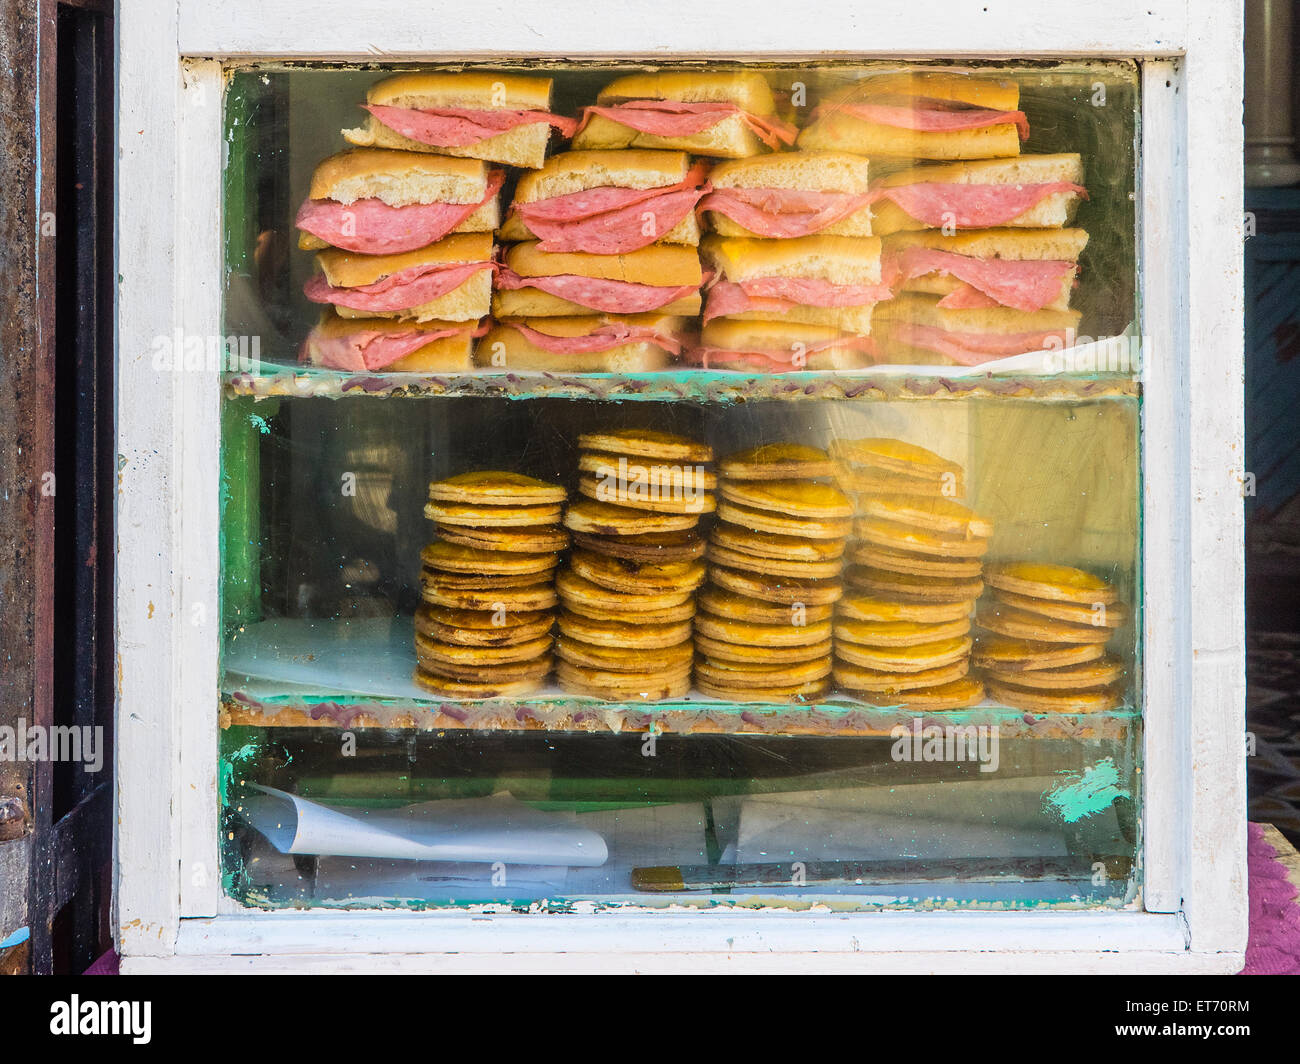 A  sandwich vendor's display case holding sandwiches and other foods in Santiago de Cuba. - Stock Image